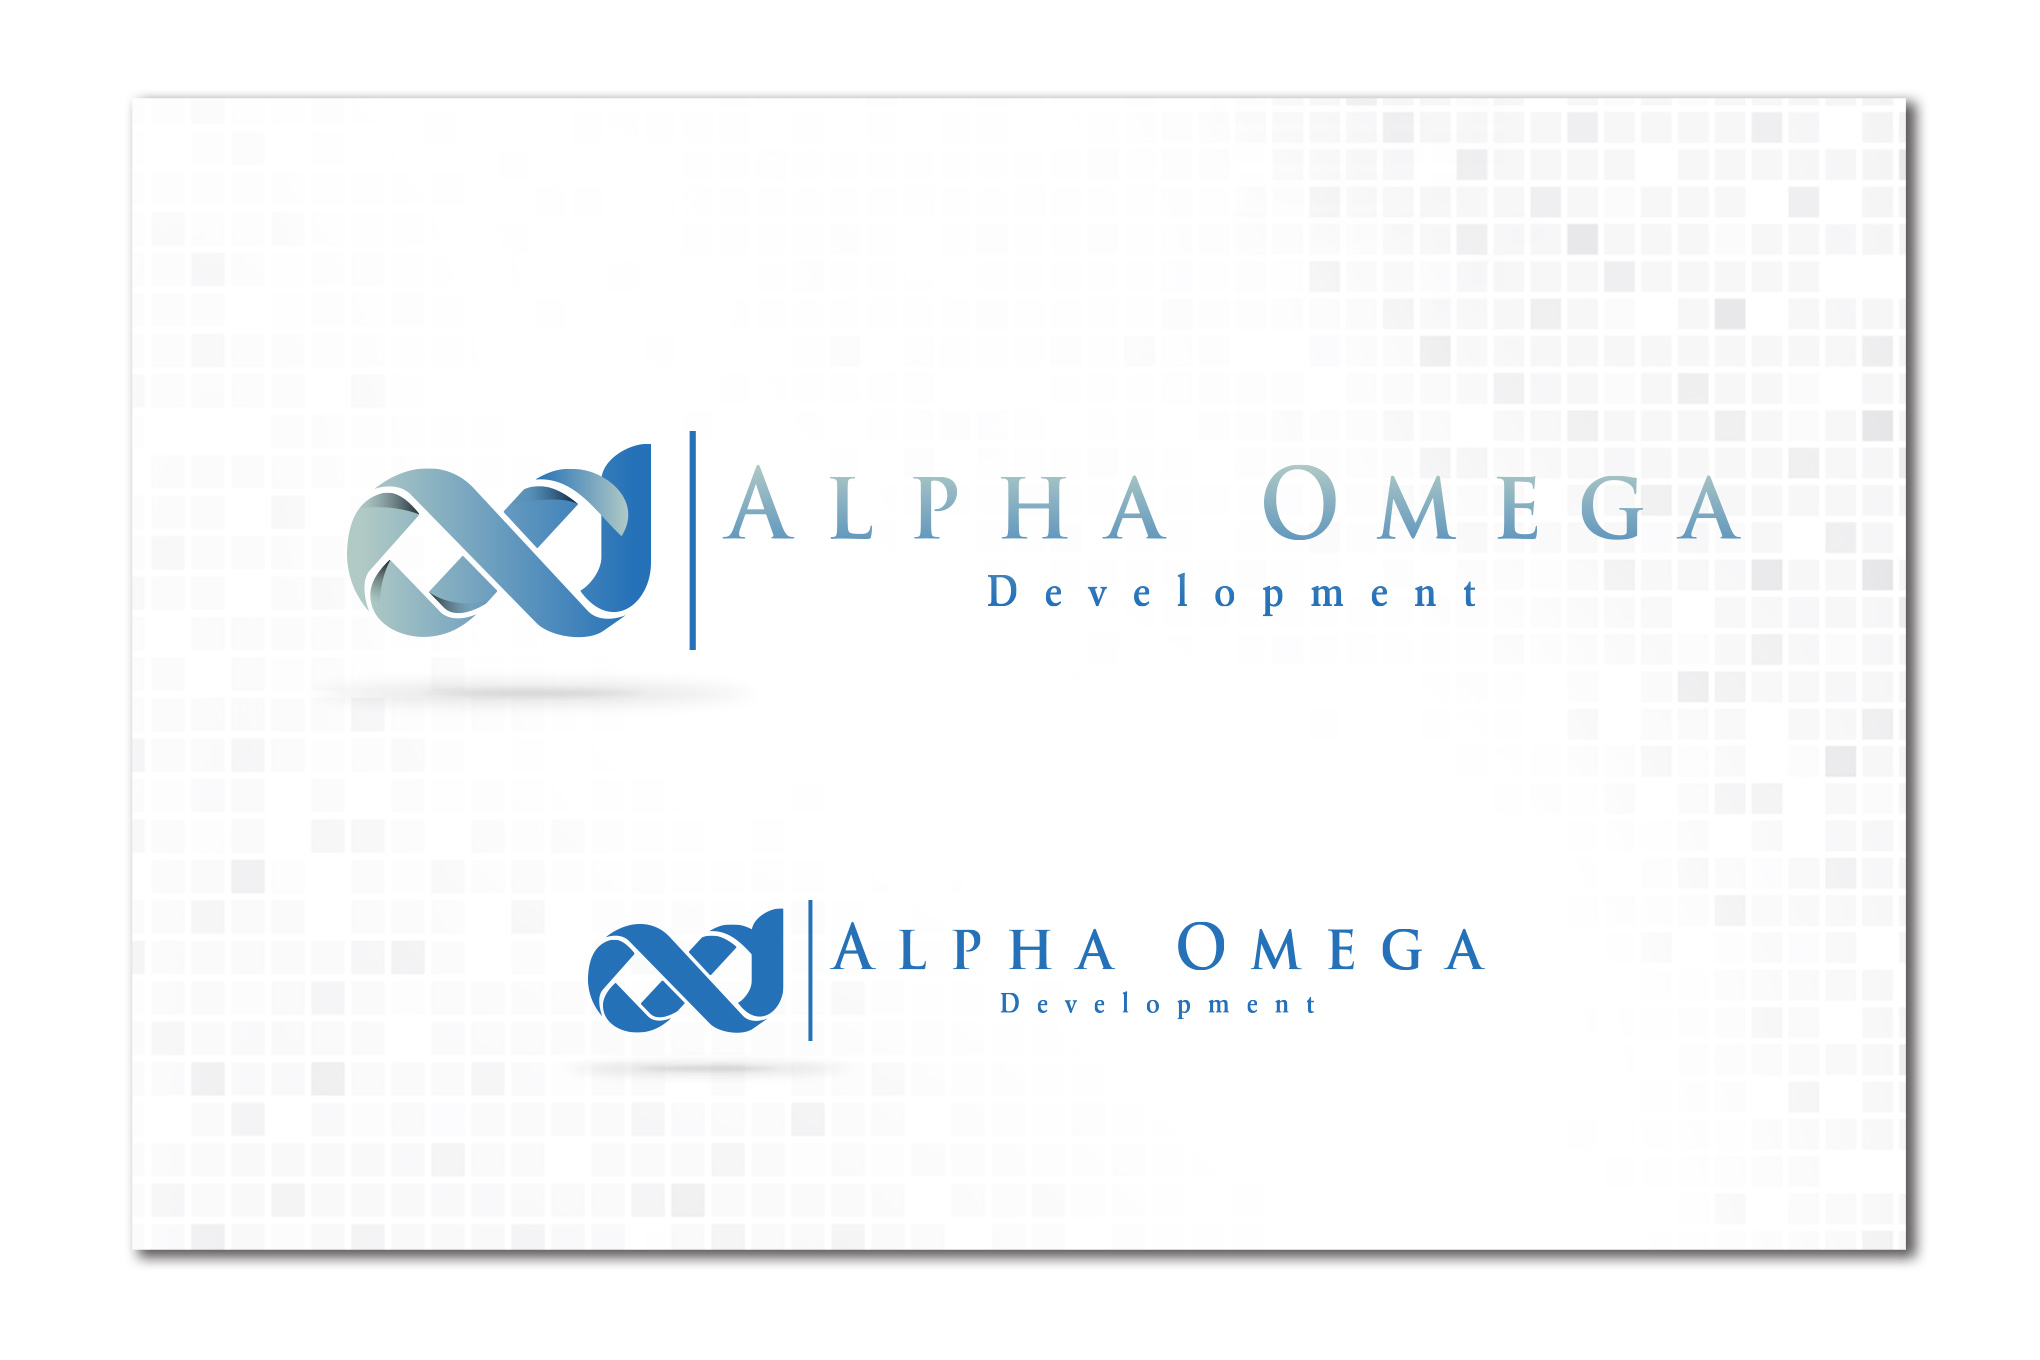 Gallery : Logo and Stationery Design for u0026quot;ALPHA OMEGA DEVELO